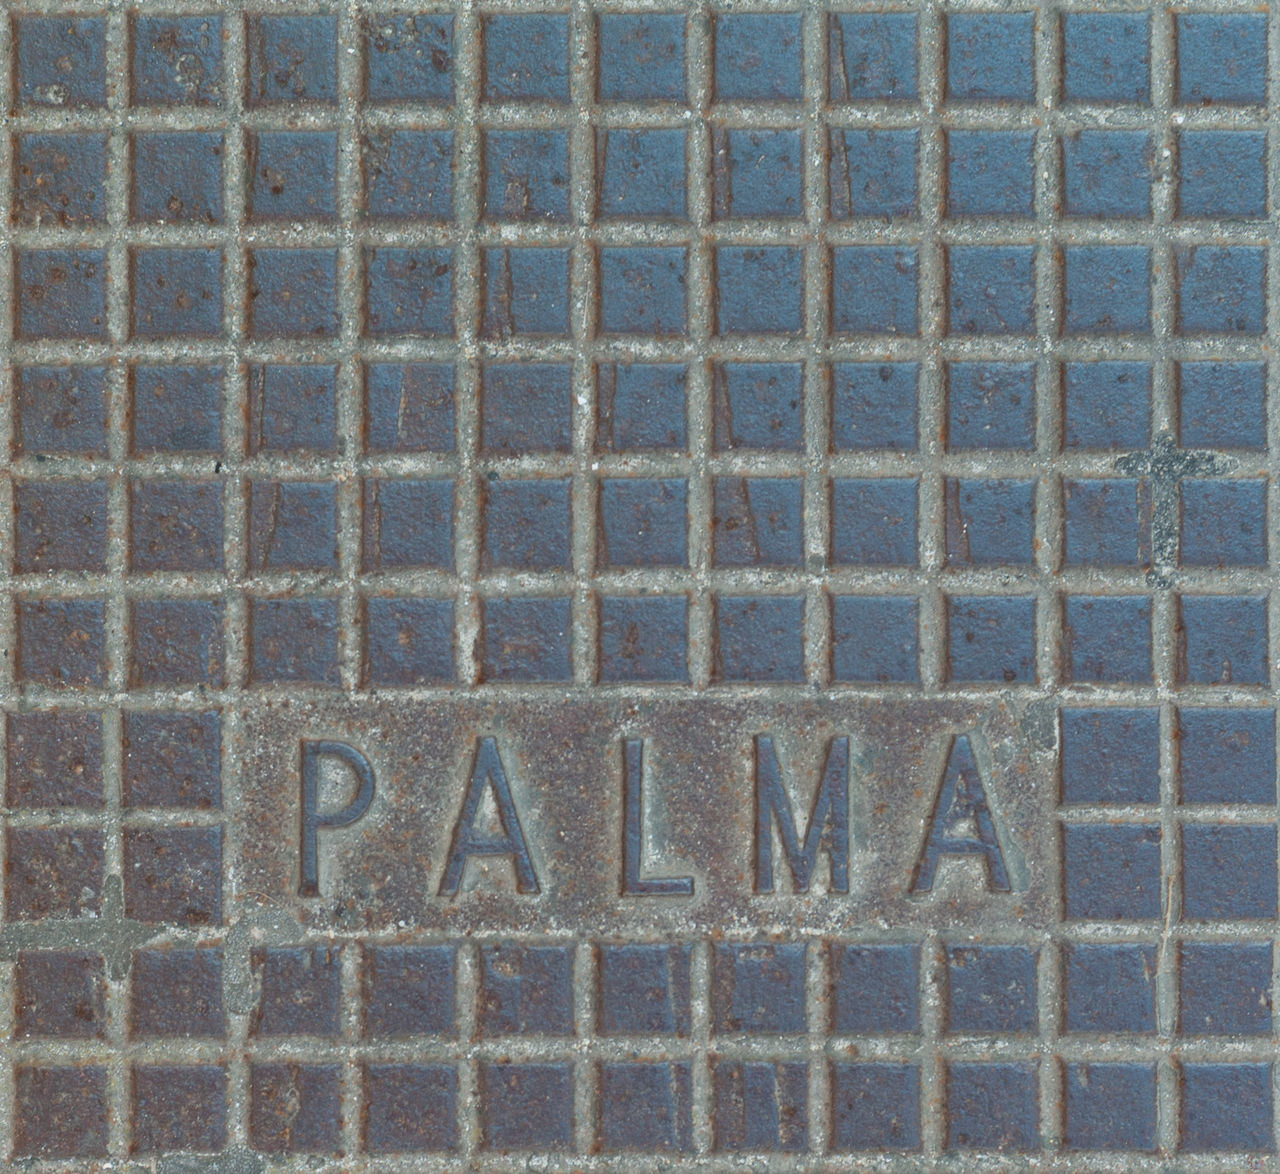 Sewer system of the city of Palma de Mallorca on Mallorca island Baleares Balearic Islands Majorca Majorca, Spain Mallorca Palma Palma De Mallorca Pattern Sewer Sewer System Textured  WATER SHORTAGE Water Supply